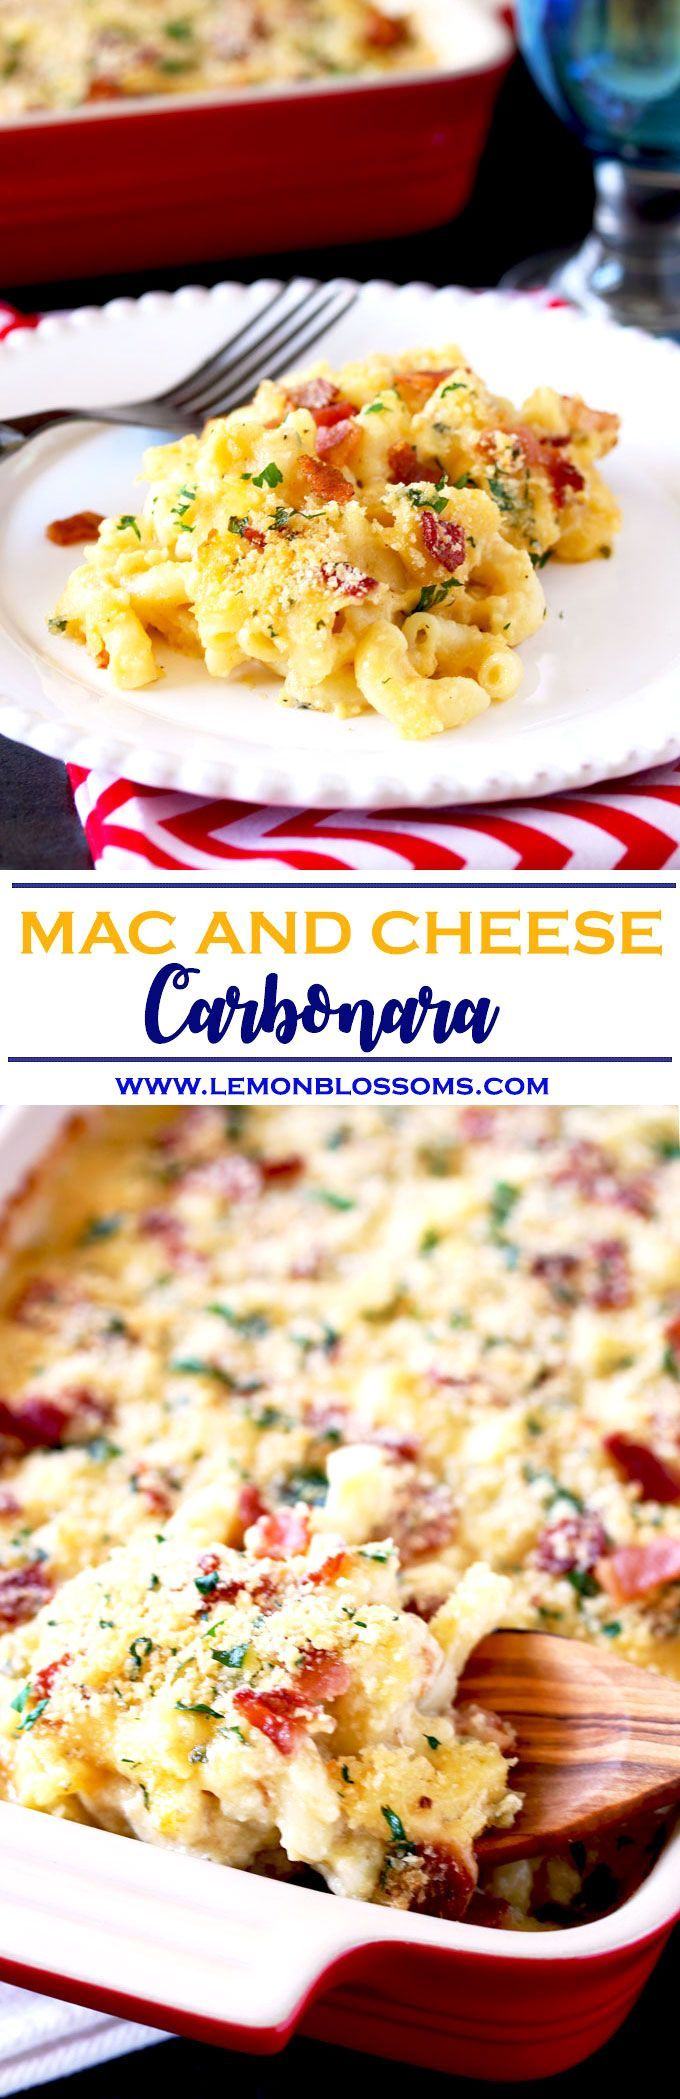 Creamy, cheesy, bacon-y and scrumptious this easy to make Mac and Cheese Carbonara is an exciting alternative to the delicious classic Mac and Cheese we all love!      #macandcheese #carbonara #pasta #comfortfoods via @https://www.pinterest.com/lmnblossoms/